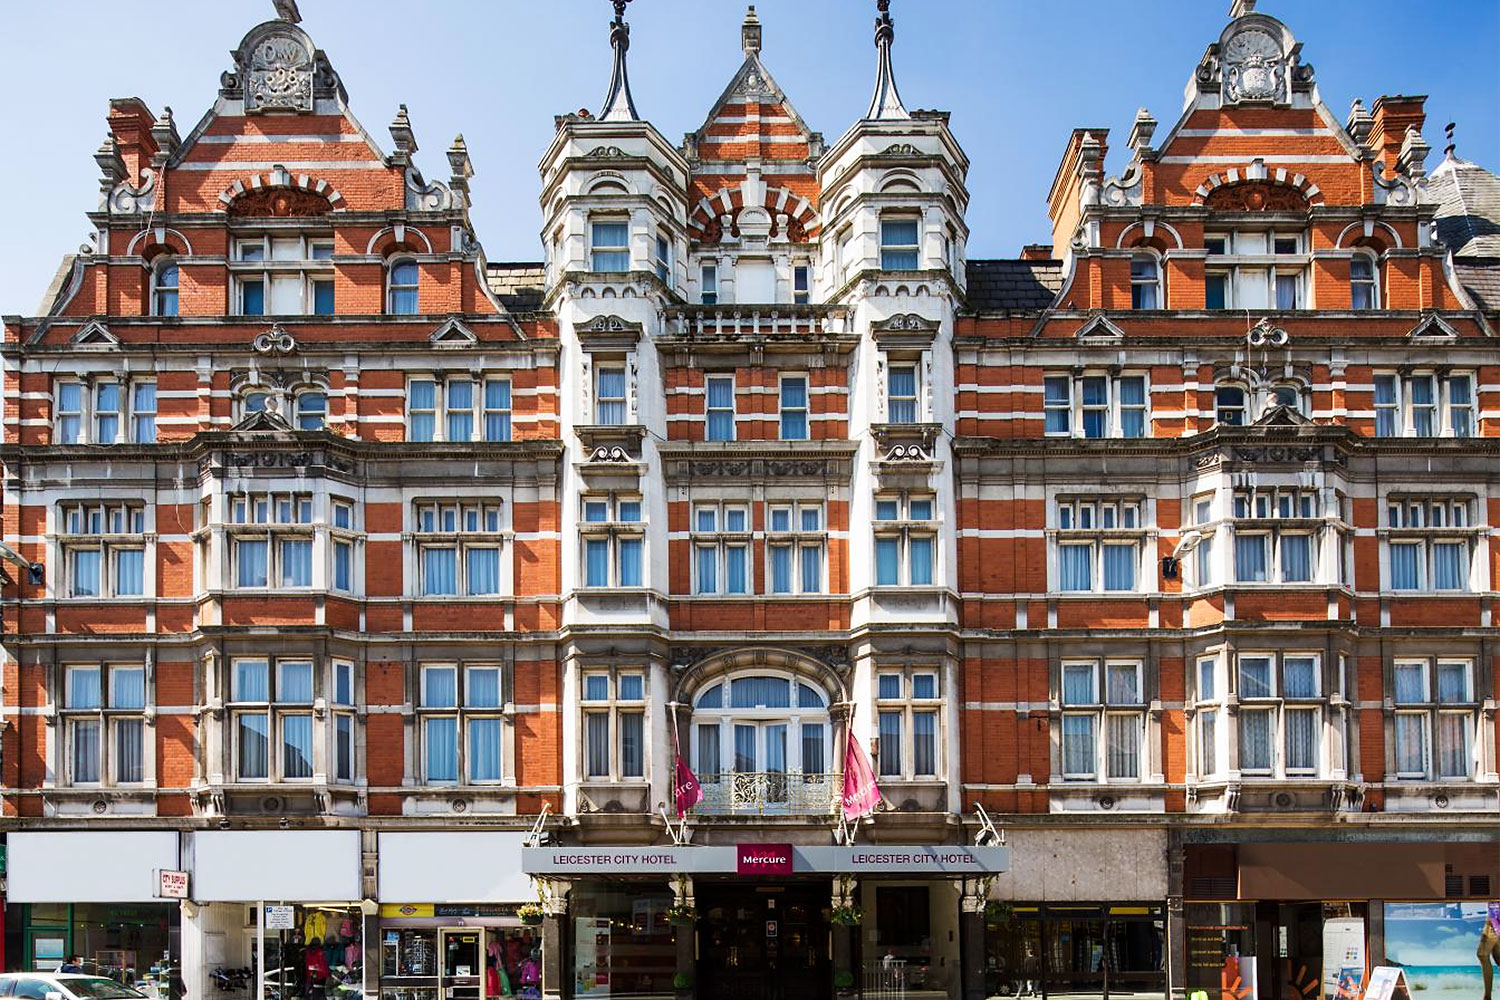 The Mercure Leicester Grand Hotel in Leicester. The UK government recently eased lockdown rules on May 17, allowing more travel with varied quarantine measures for visitors from different countries.